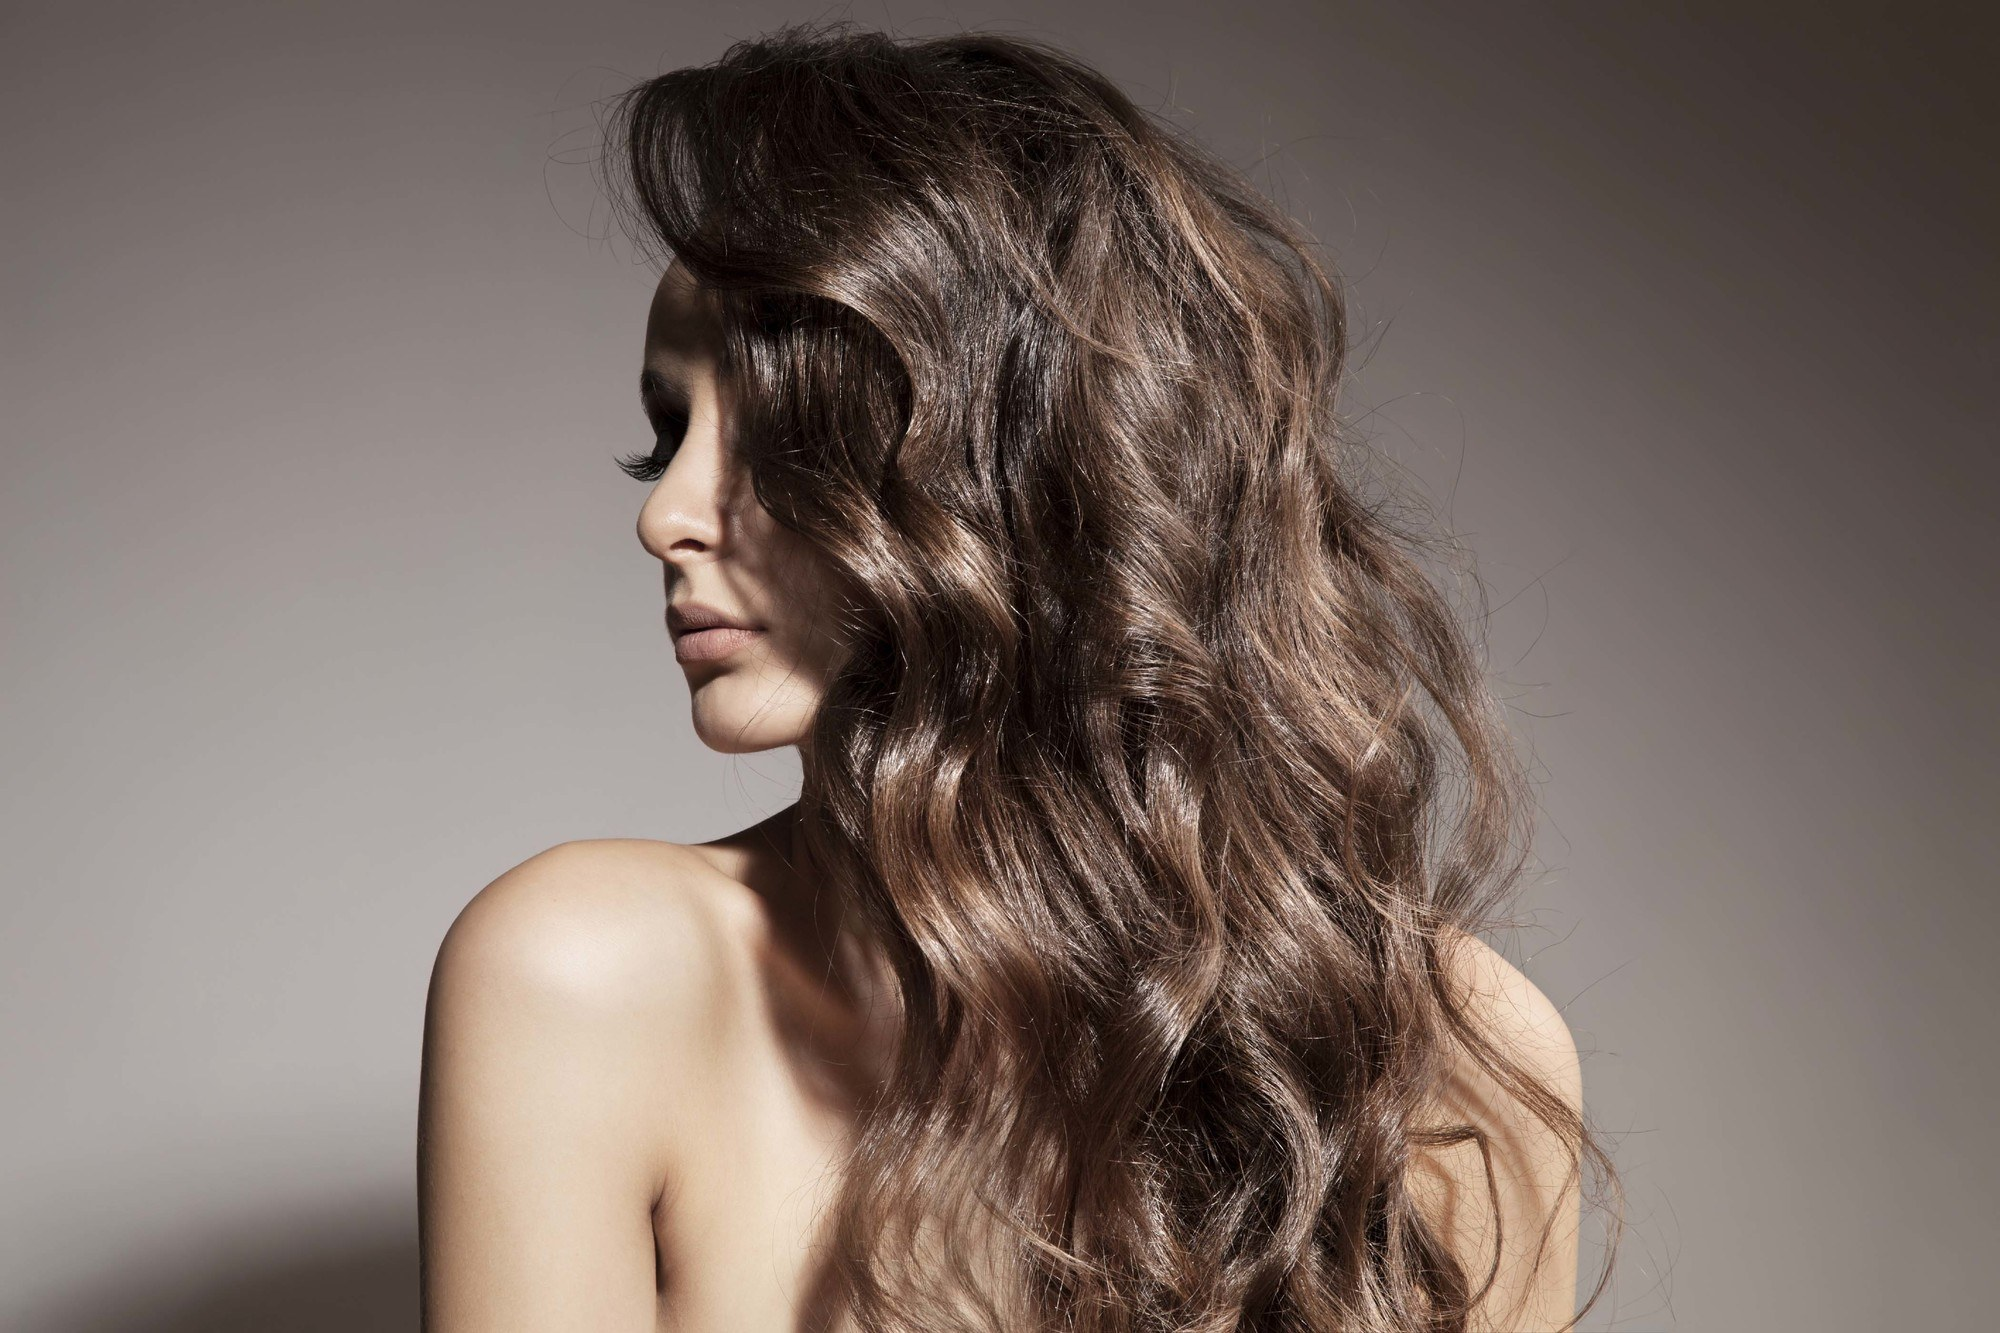 Wavy hair tips brunette girl with thick wavy hair turning head to the side